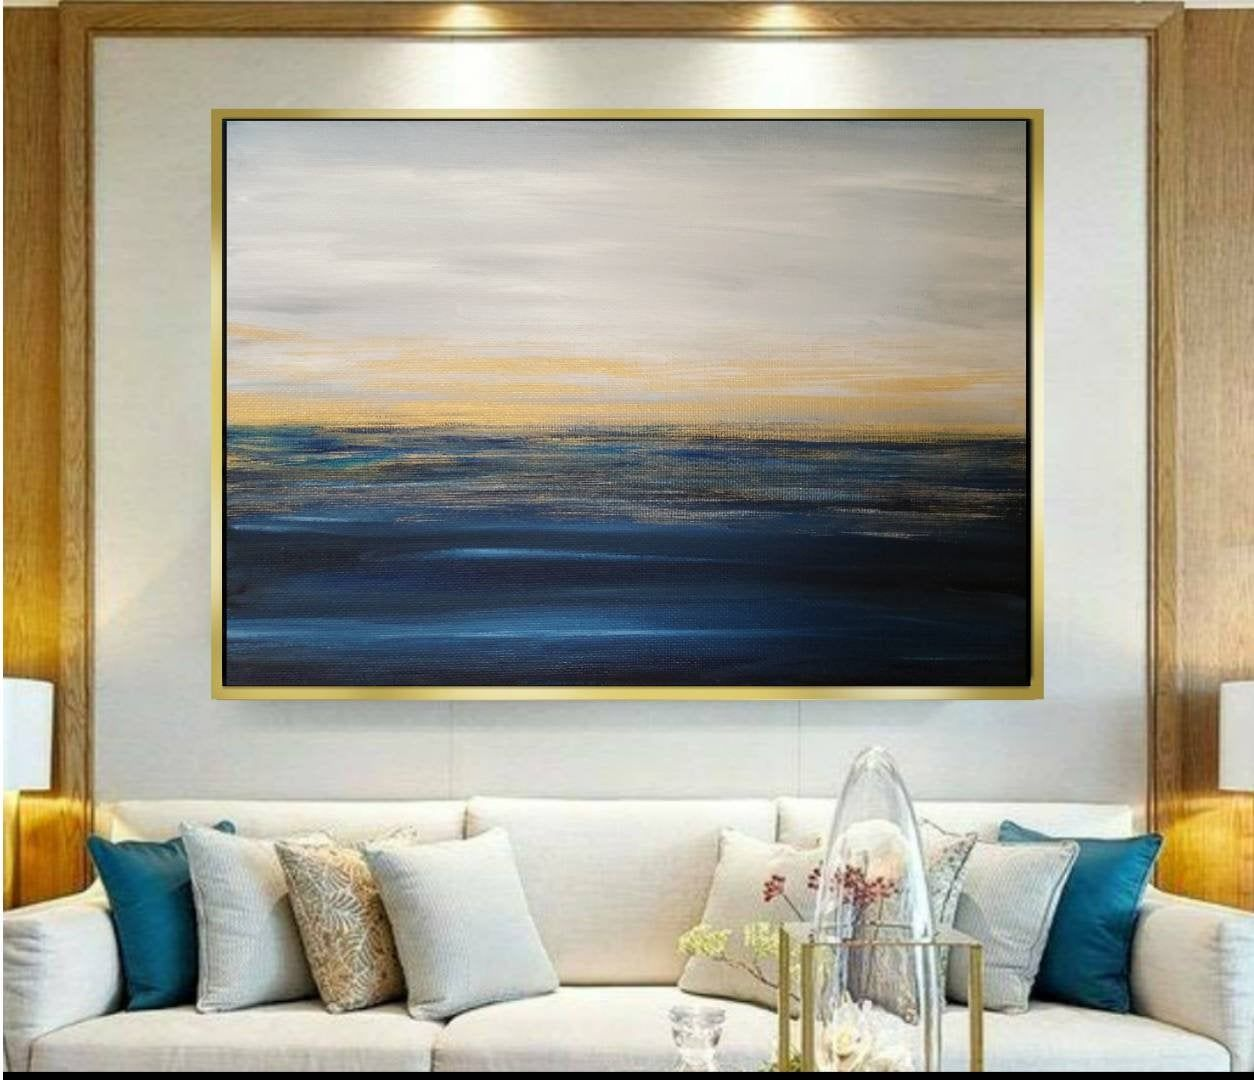 Abstract Painting Seascape Painting Original Painting Etsy In 2020 Office Artwork Seascape Paintings Ocean Painting #painting #picture #for #living #room